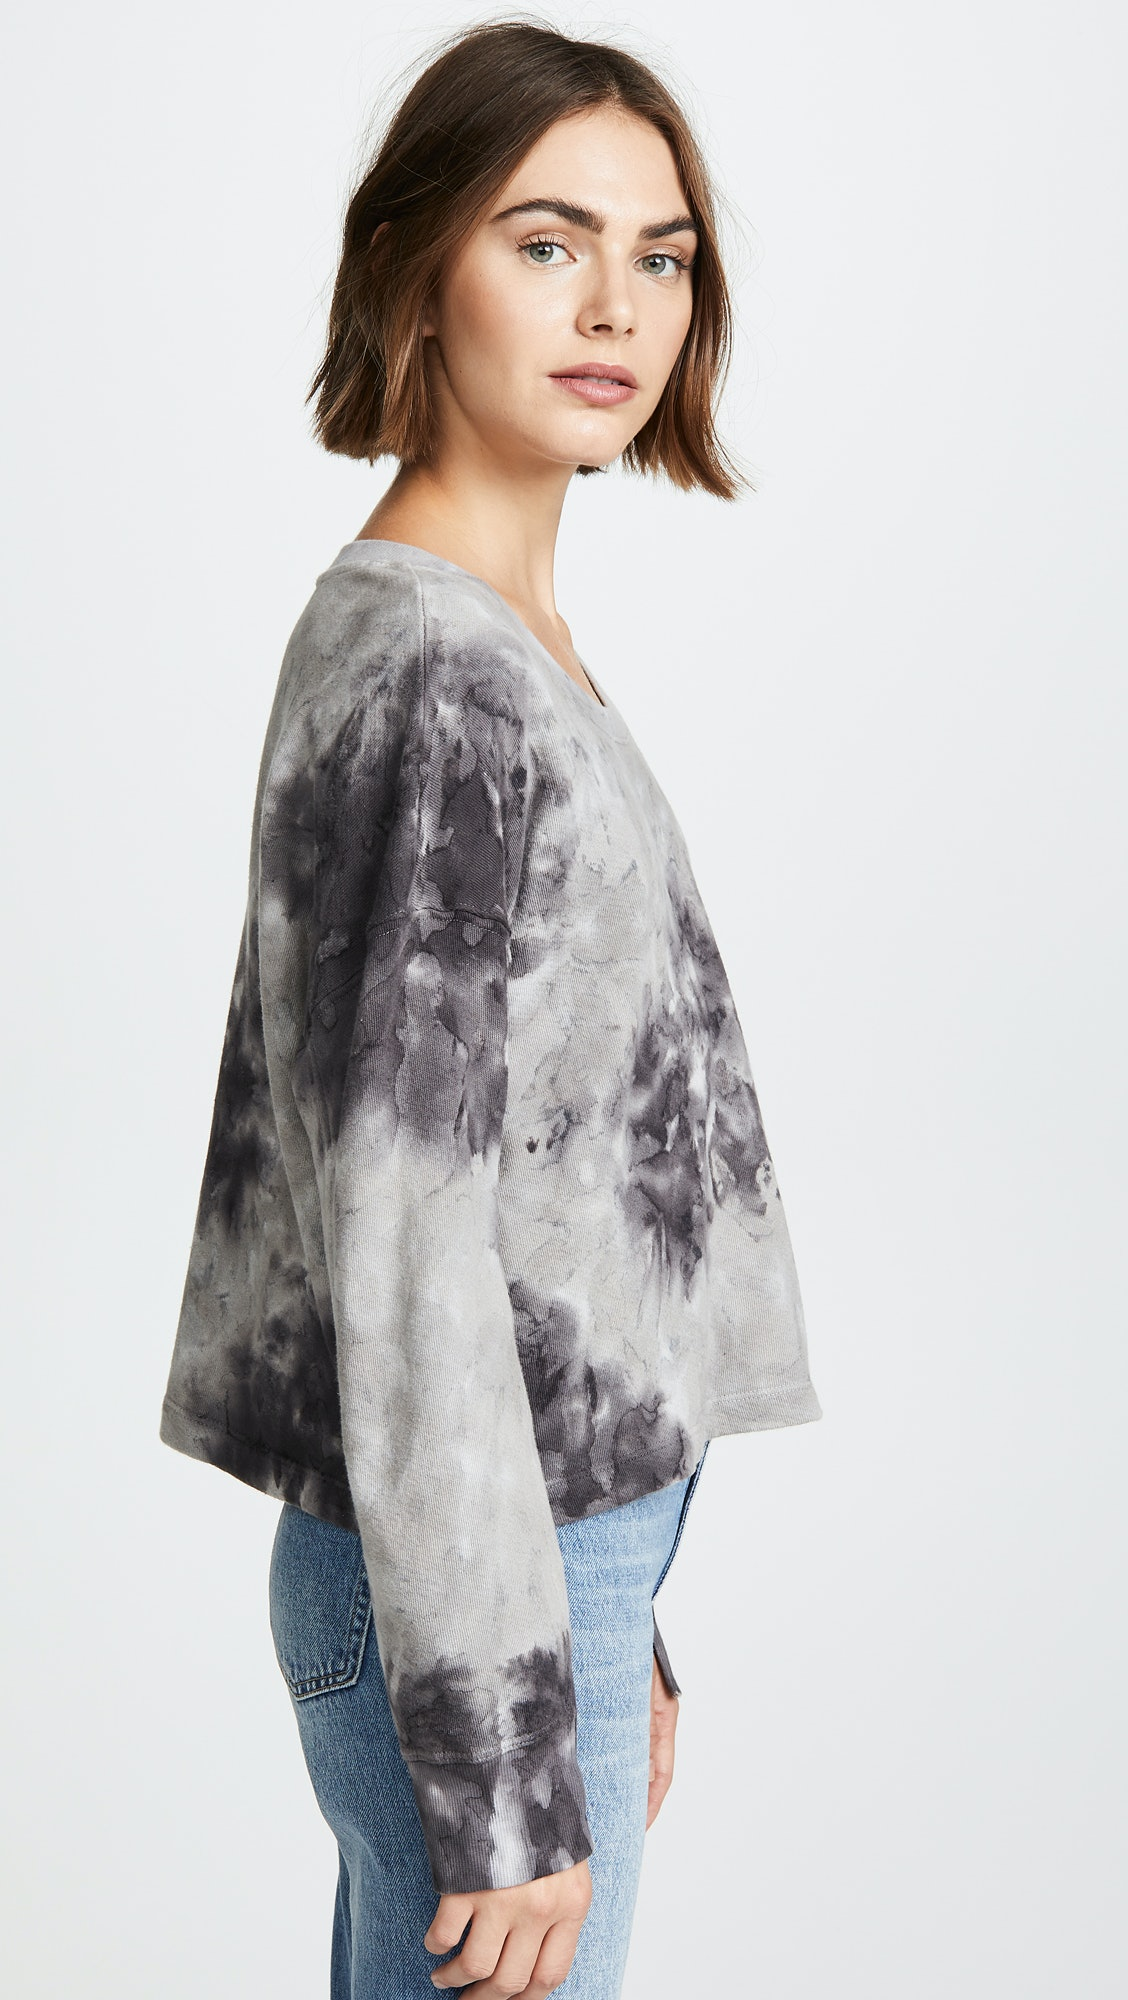 d4267a6c7 How To Wear The Tie Dye Trend, Thanks To These 15 Fashion Items